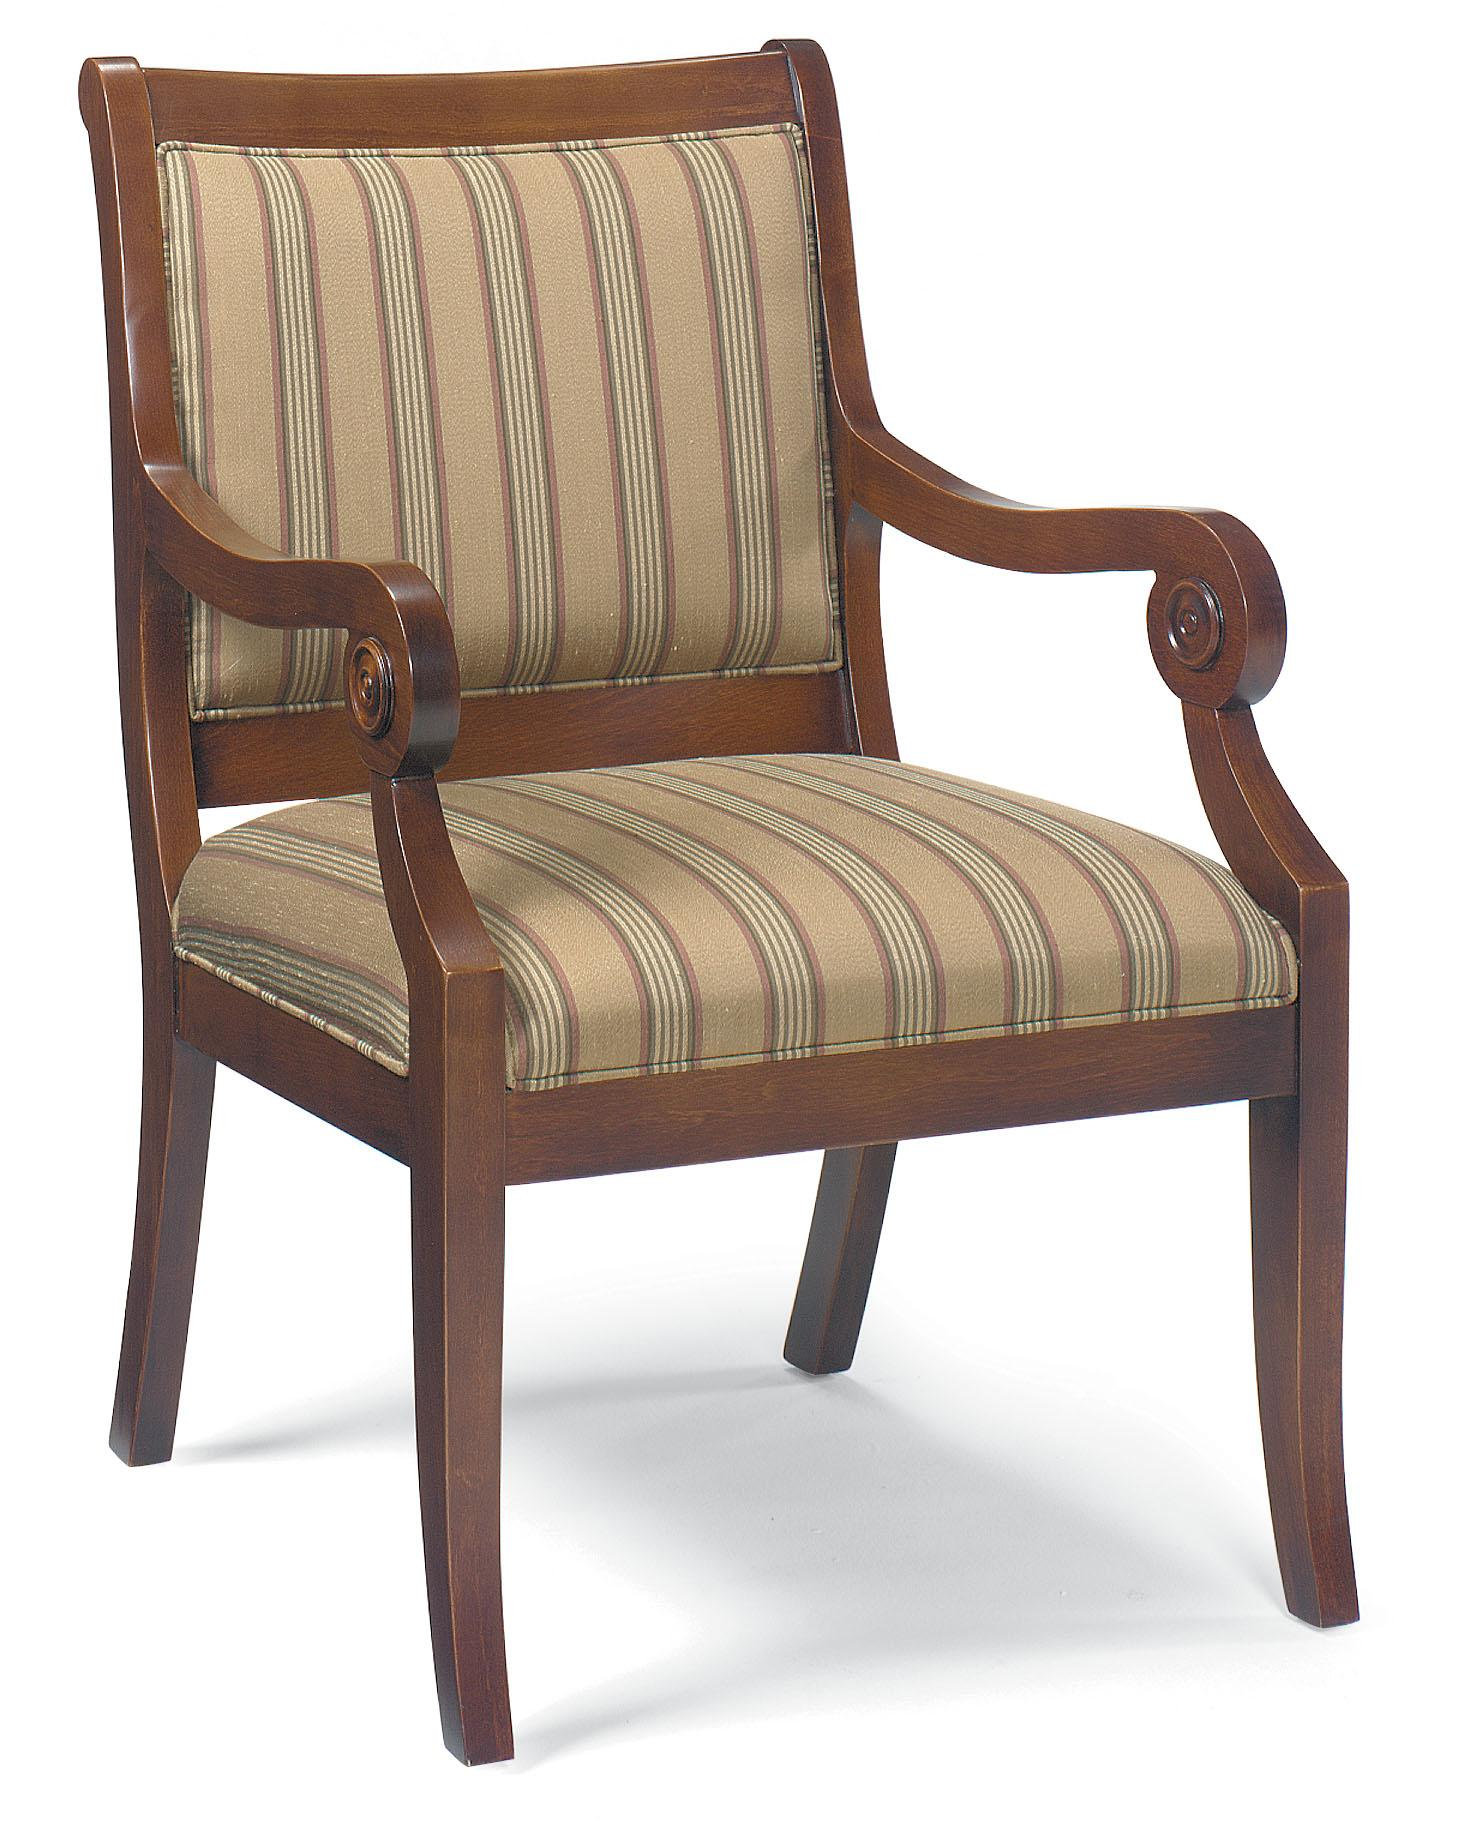 Fairfield Chairs Exposed Wood Chair  - Item Number: 5357-01